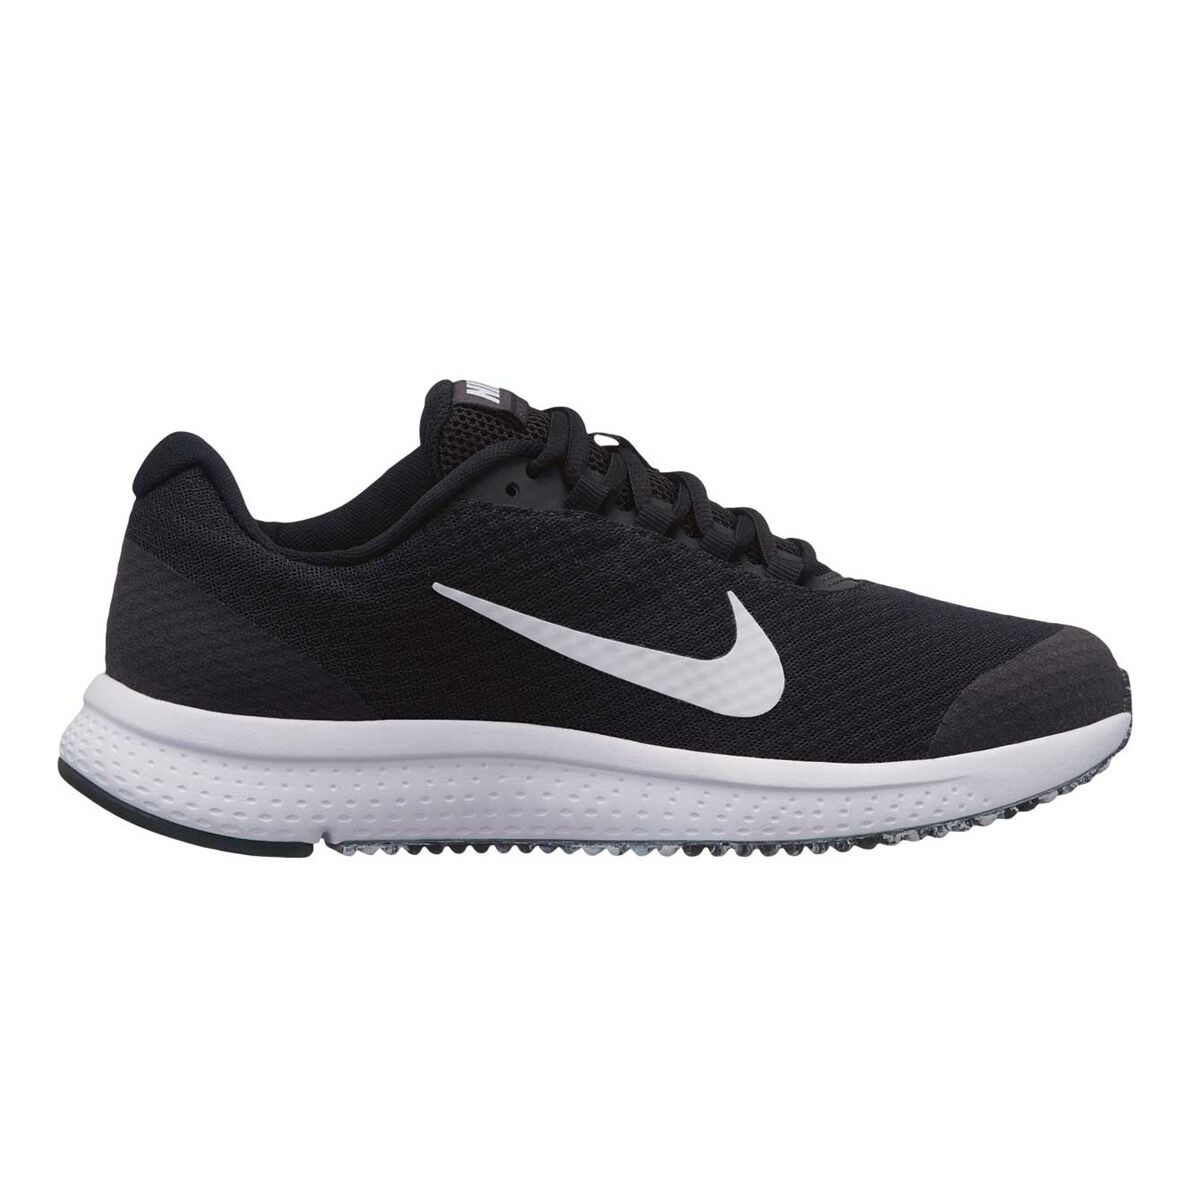 Nike Run All Day Womens Running Shoes Black White US 8